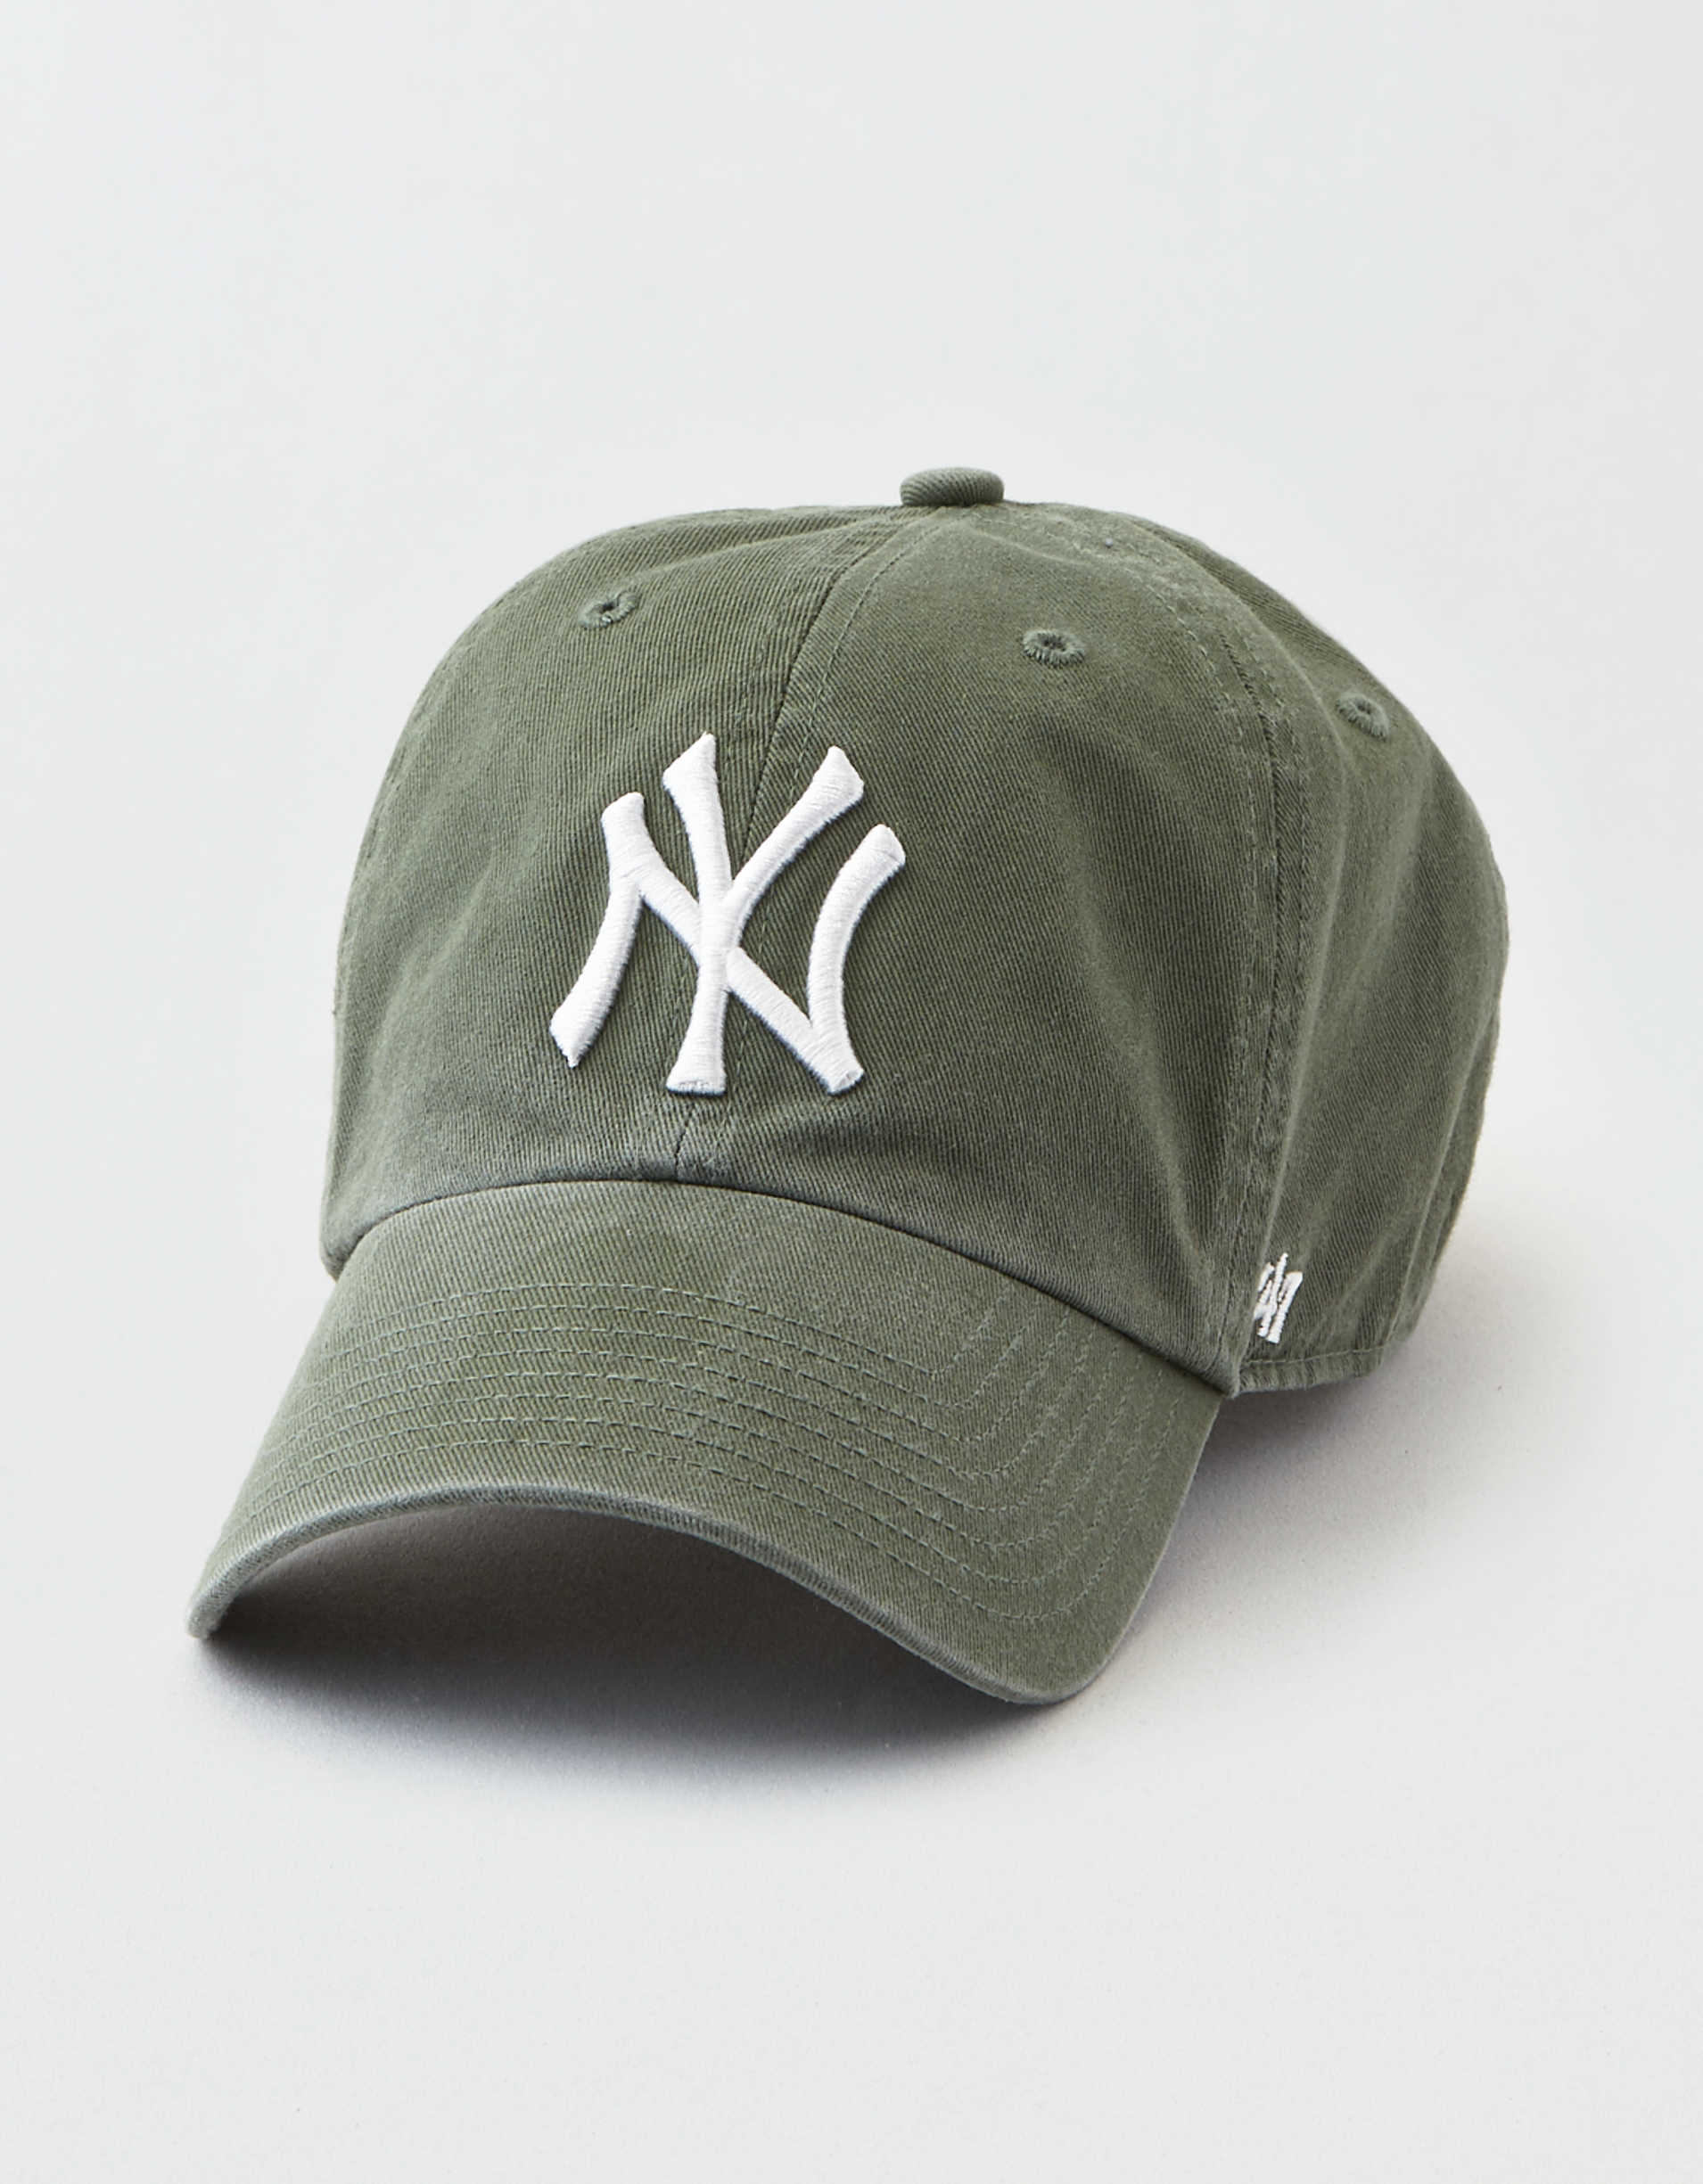 '47 Brand New York Yankees Baseball Cap